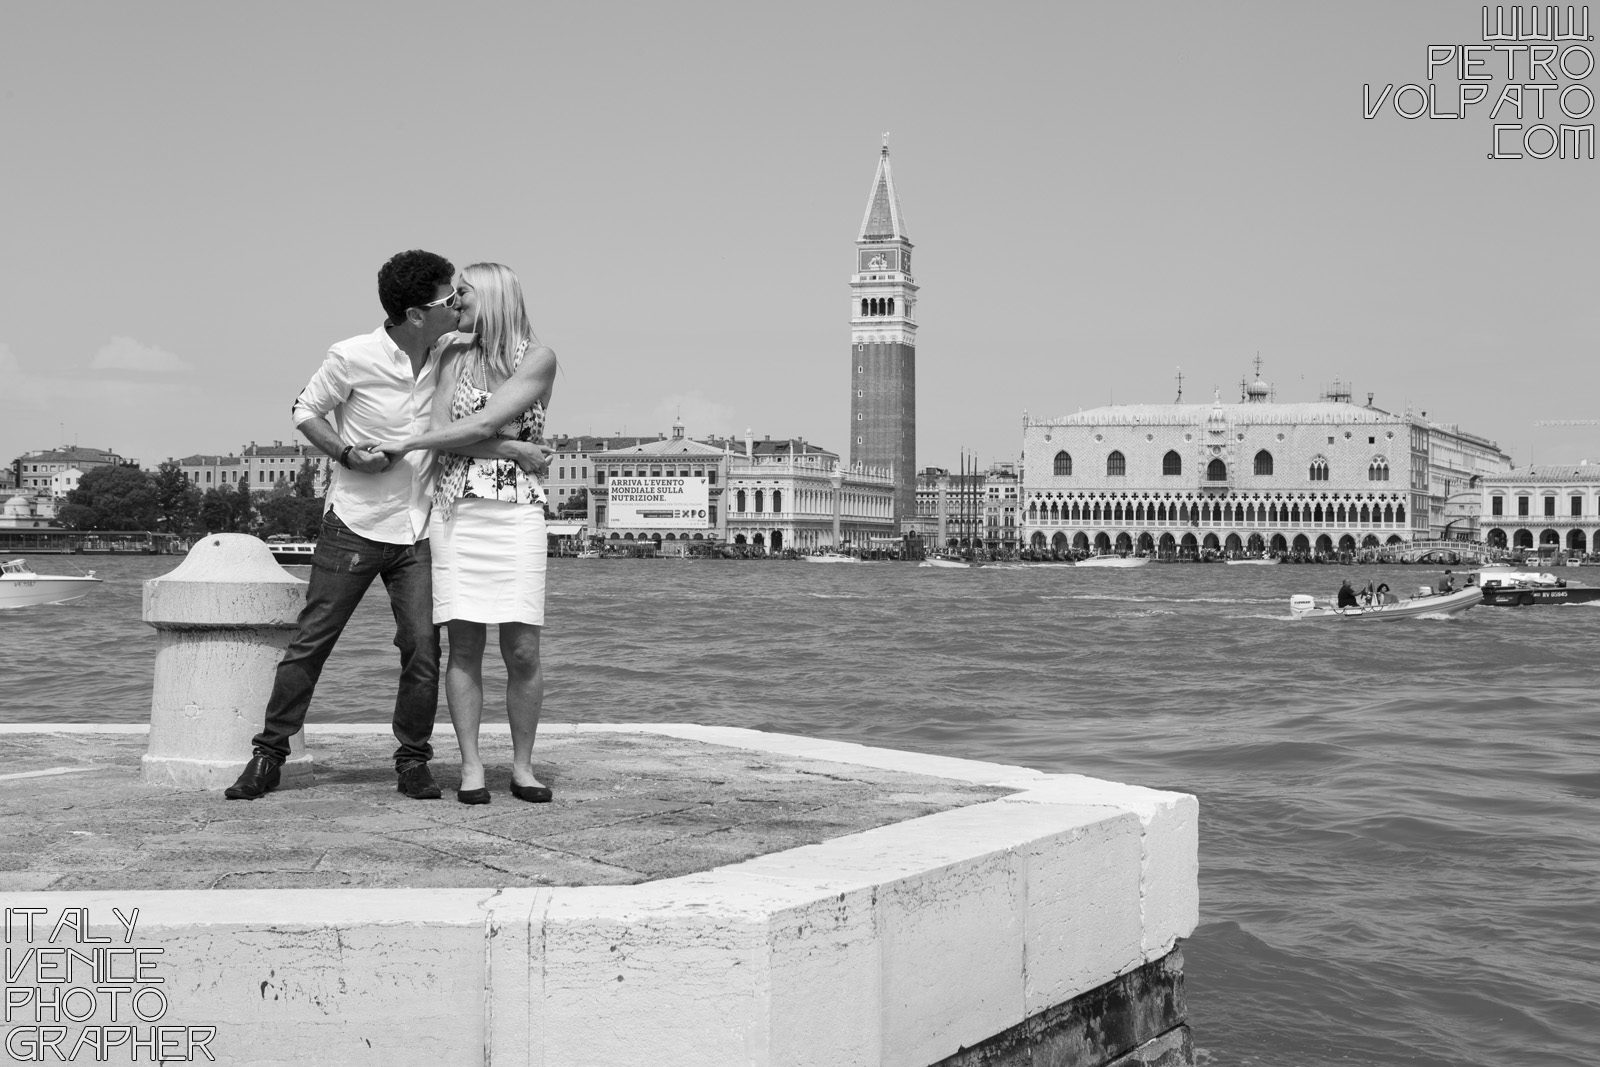 Book a vacation photographer in Venice! To capture engagement, honeymoon or anniversary trip. I prefer sincere smiles and genuine posing for my couples